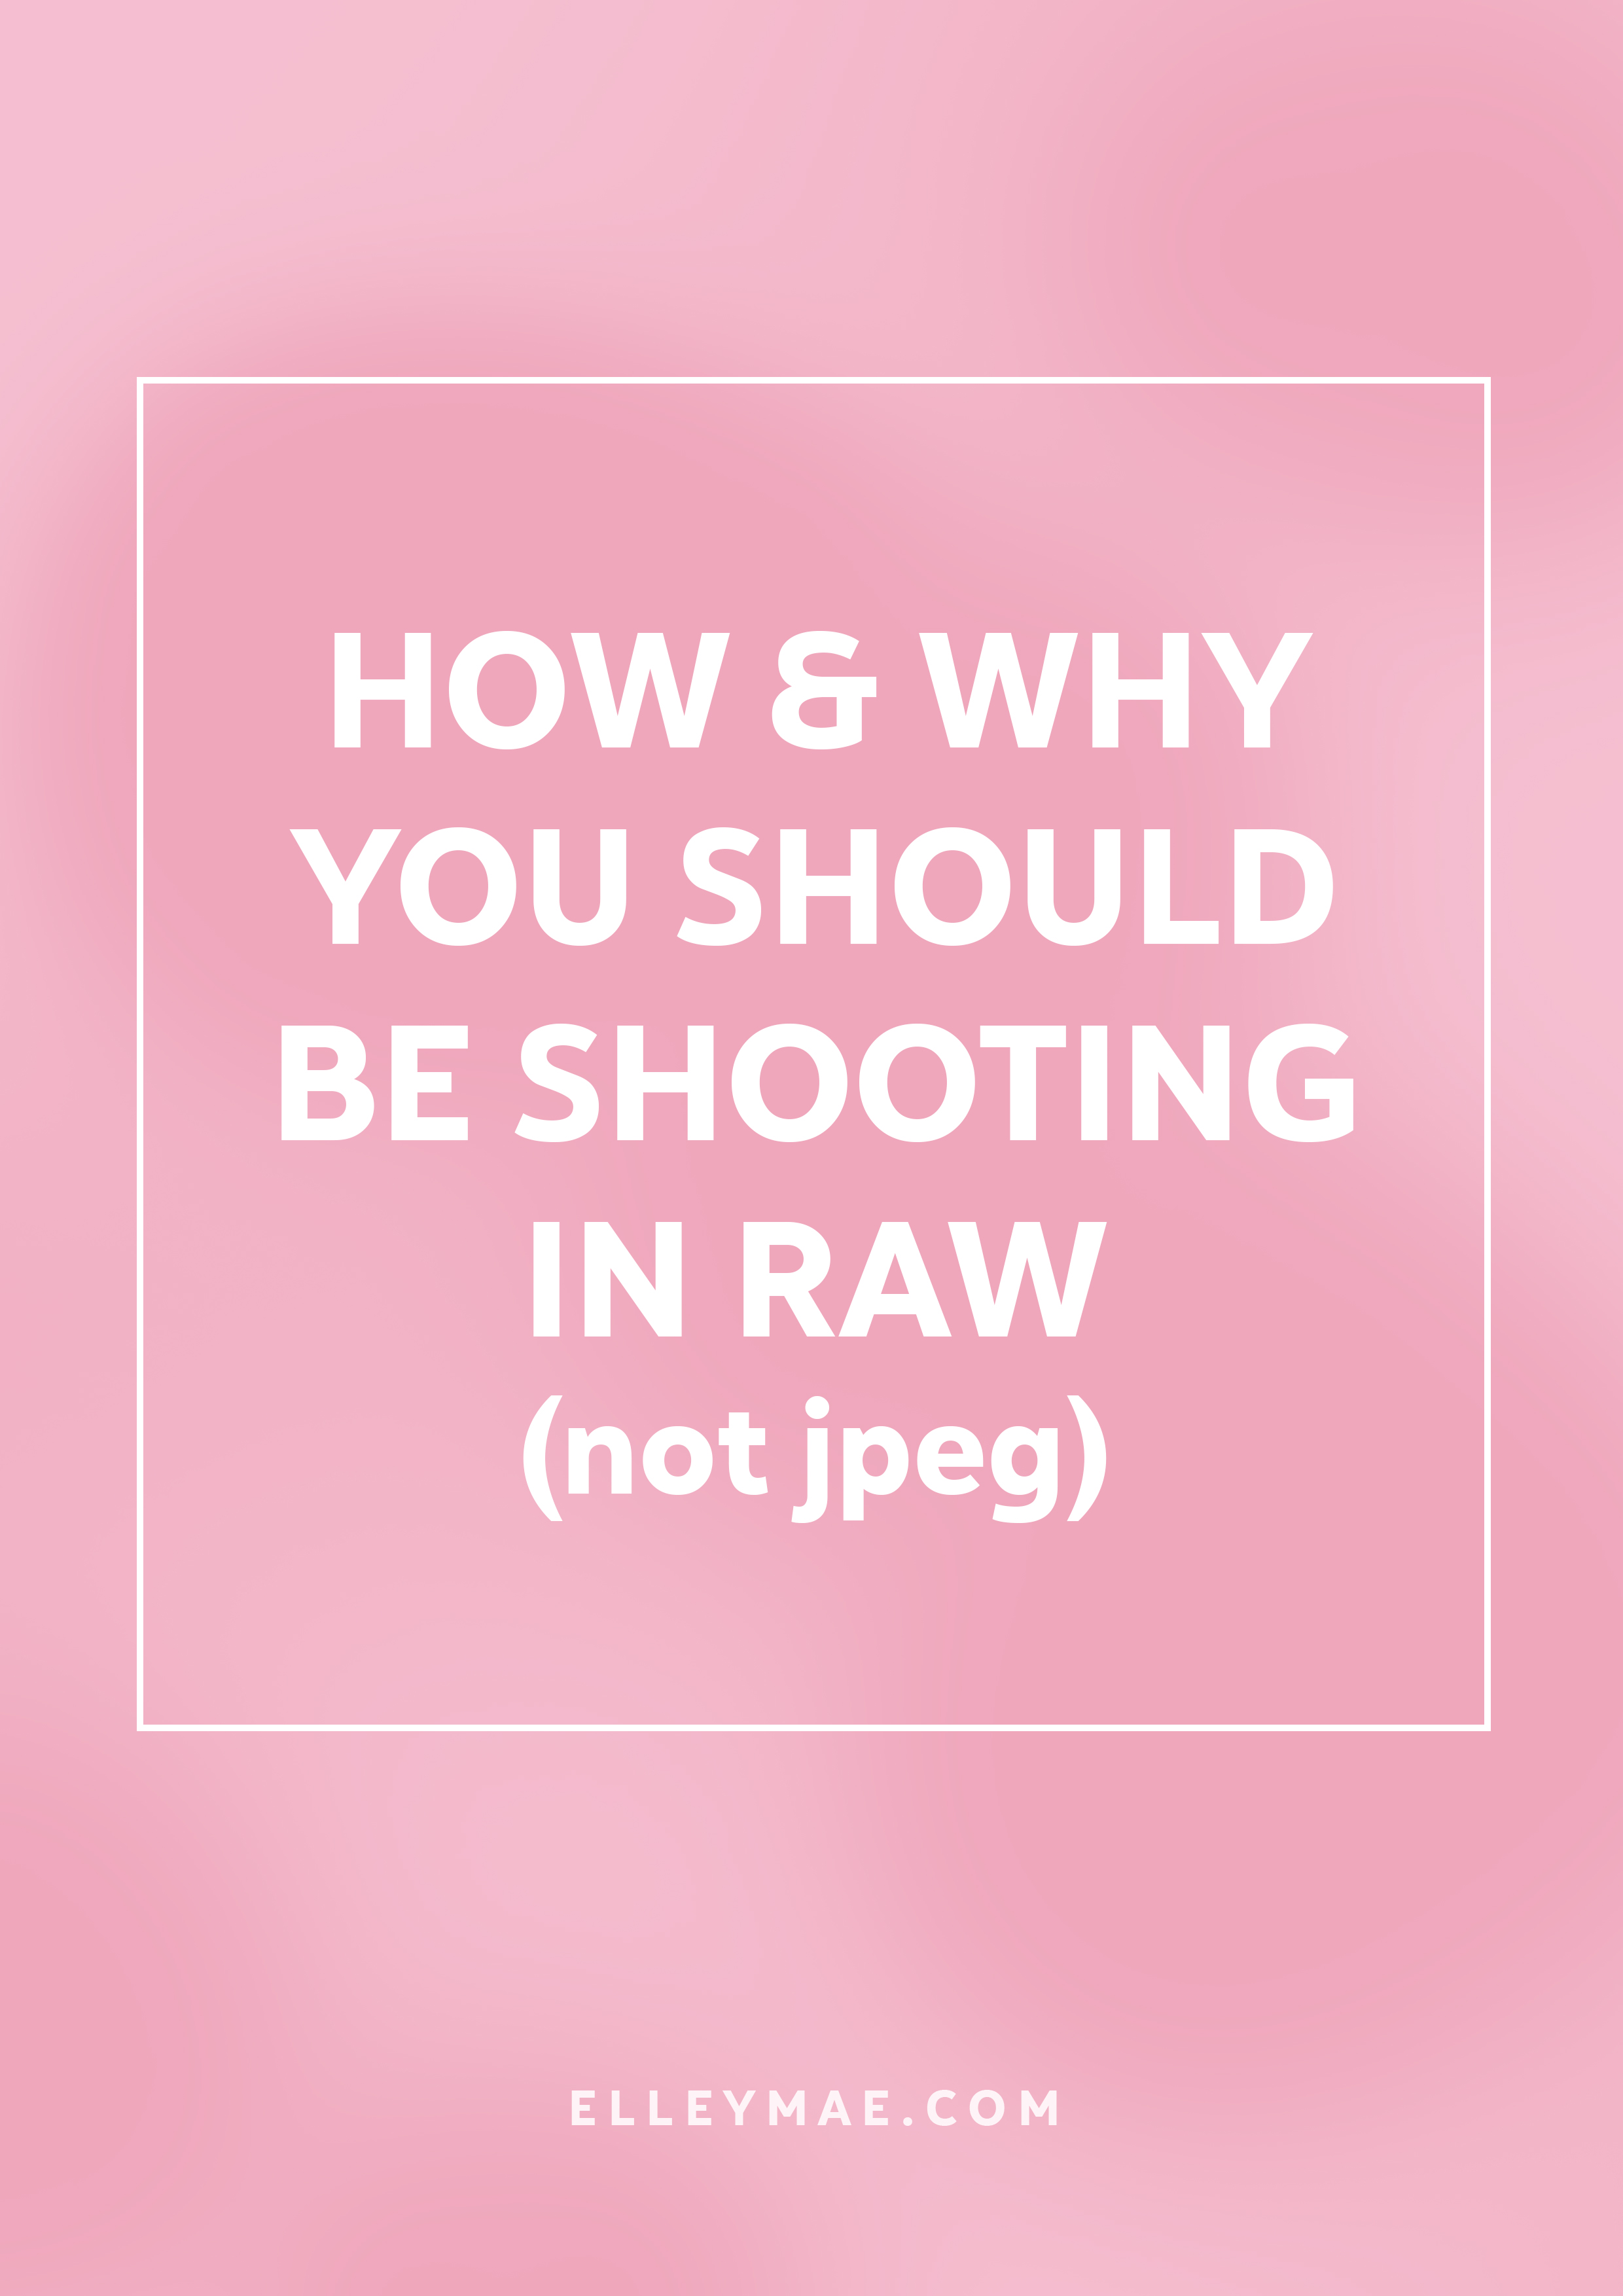 How To Edit Raw Photos in Photoshop | There's a reason pro photographers shoot in RAW not Jpeg & today you're going to find out. Shooting in RAW not only allows you to gain more control over your camera, your photo & your settings but you have so much more customisation in Adobe Photoshop editing. Learn more at ElleyMae.com